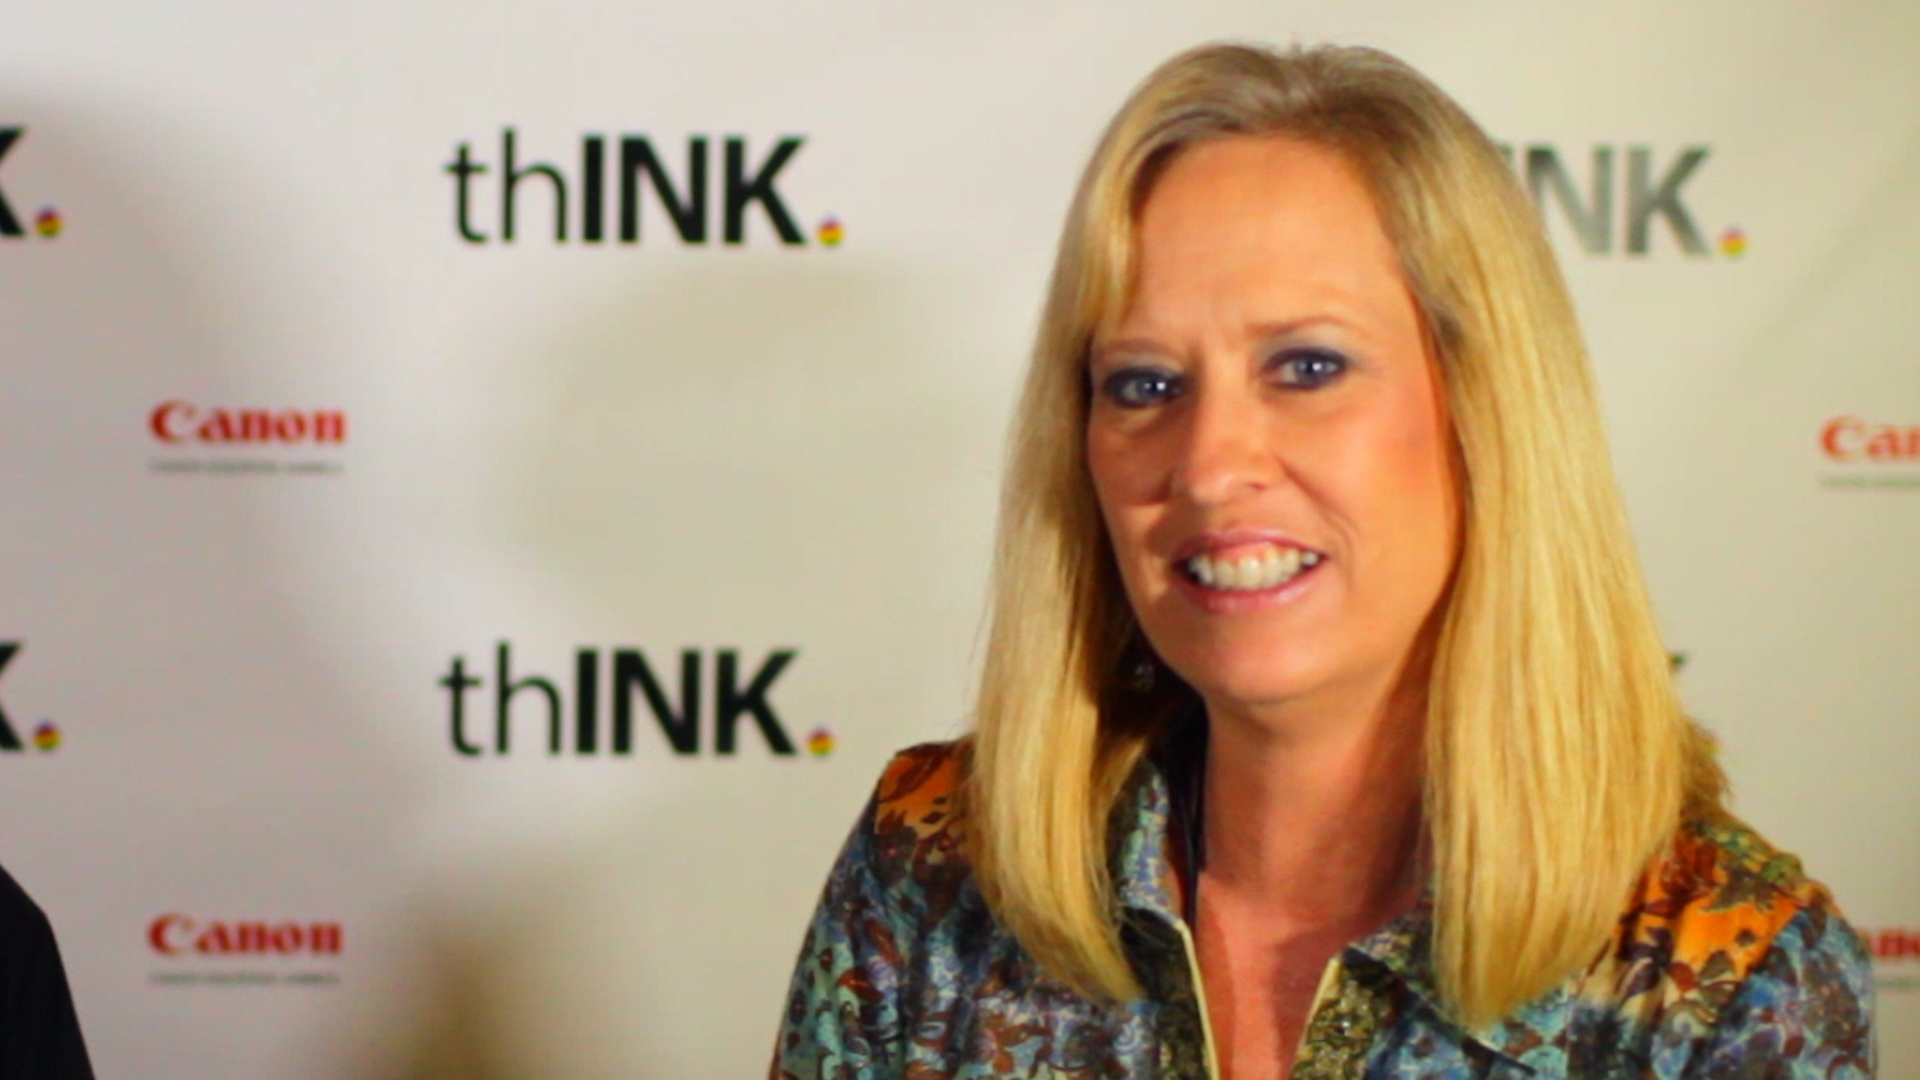 Video preview: To Inkjet Or Not? The thINK Conference helps in the decision process